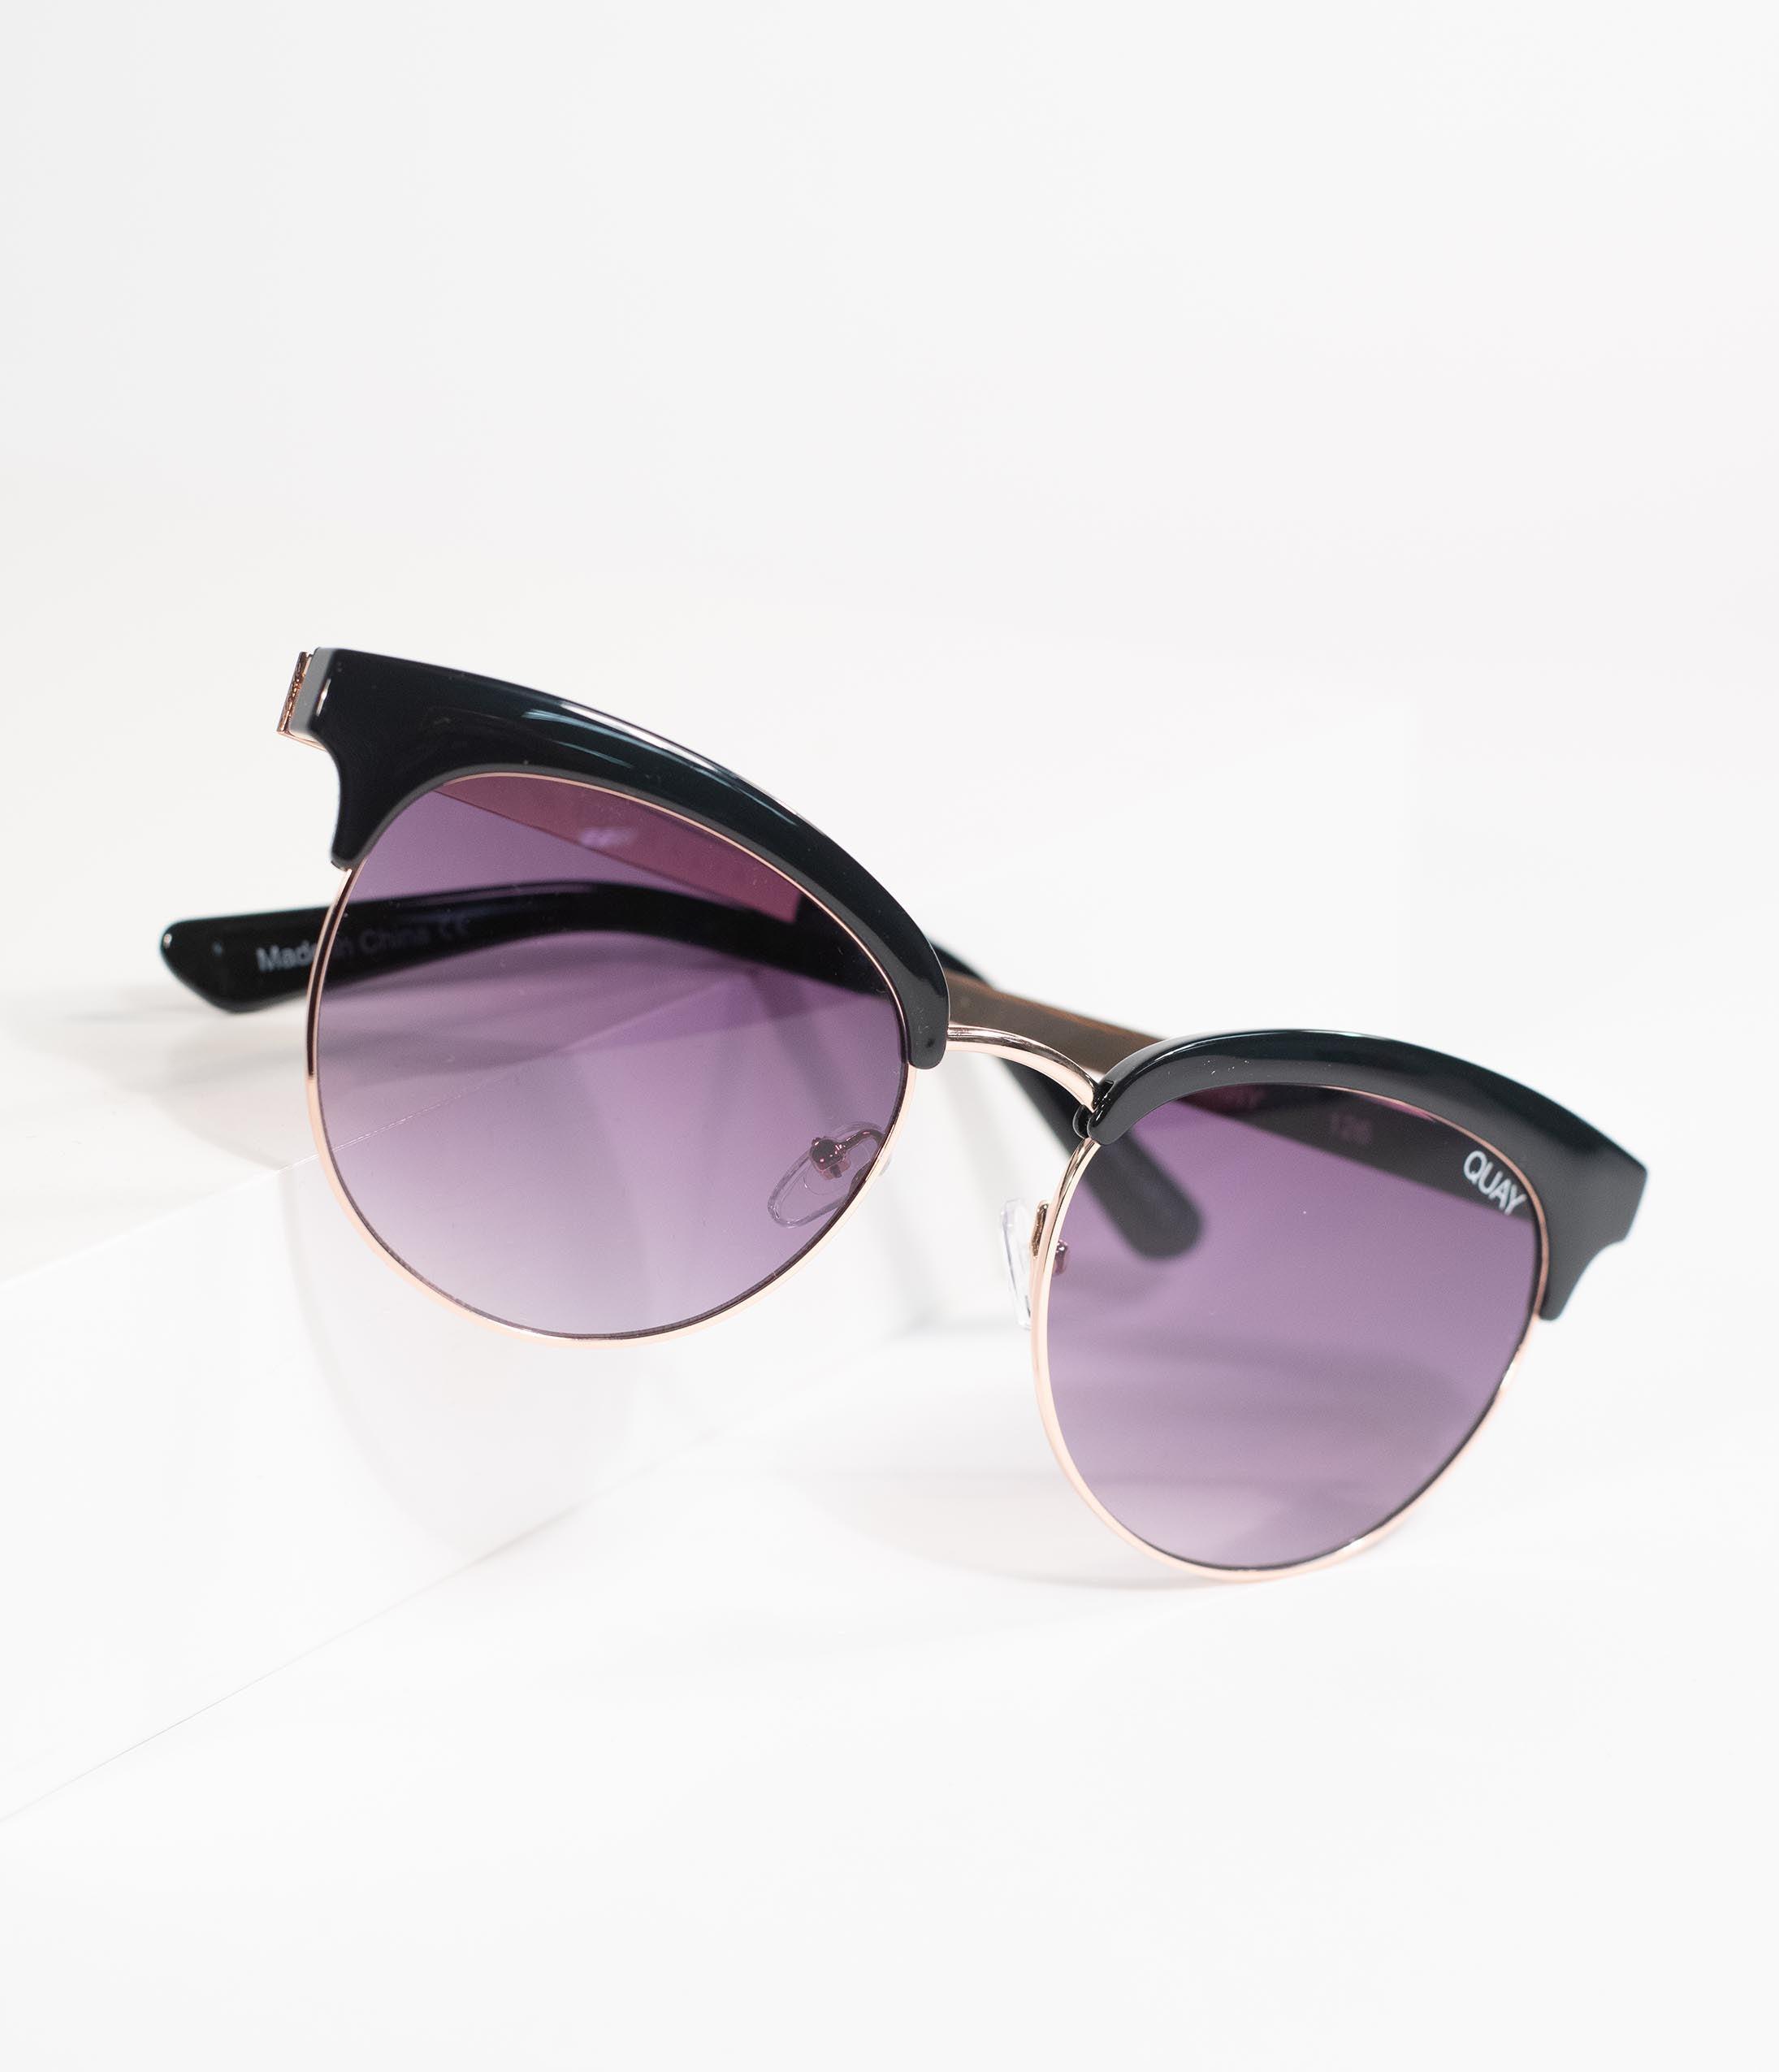 Retro Sunglasses | Vintage Glasses | New Vintage Eyeglasses Quay Retro Style Black Cherry Cat Eye Sunglasses $60.00 AT vintagedancer.com